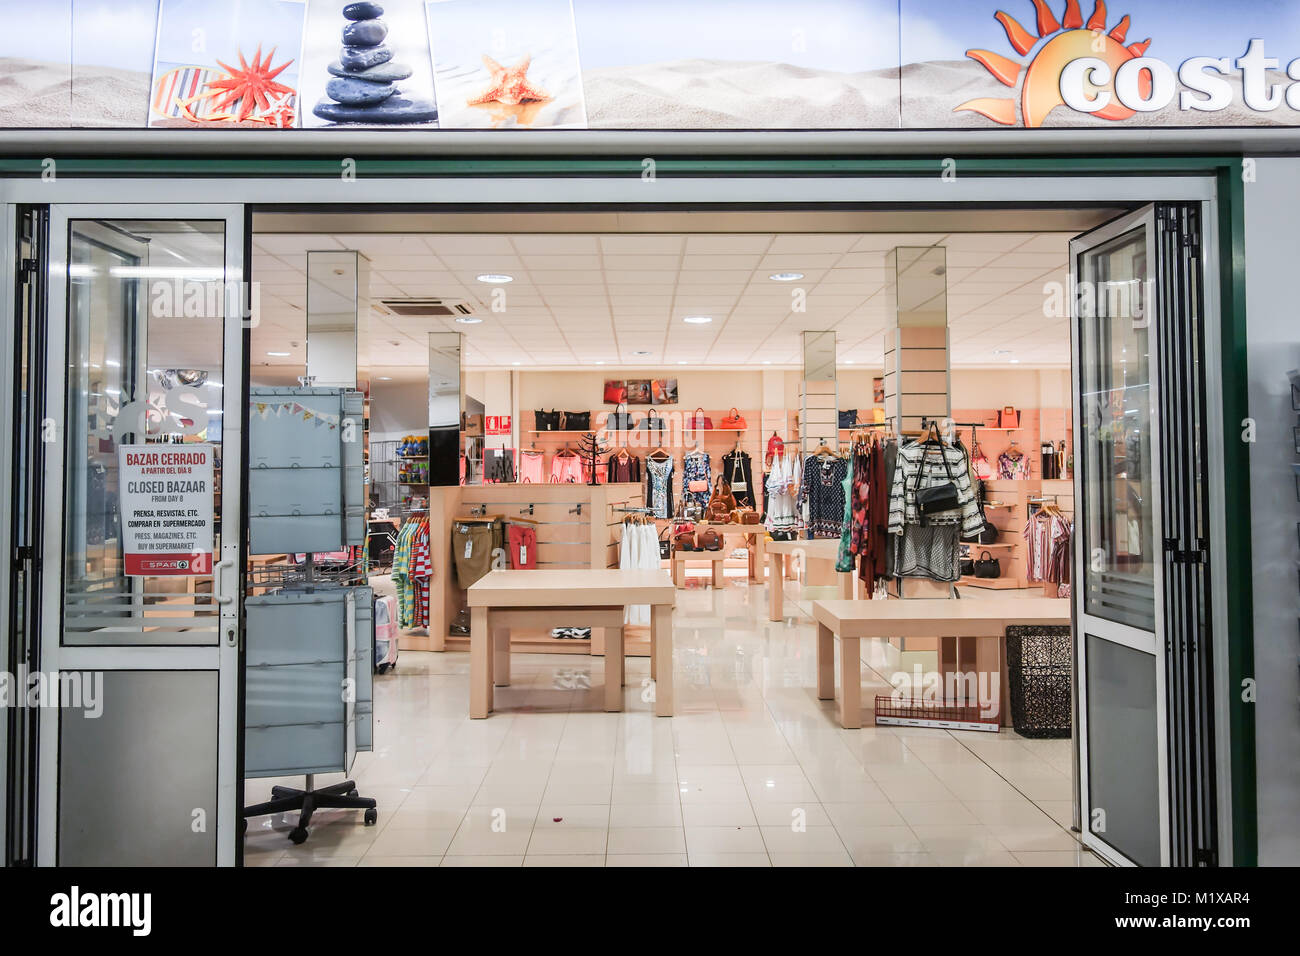 Costa Teguise, Lanzarote - 7th Nov 2017. A local fashion retailler prepares to close down their business by clearing - Stock Image